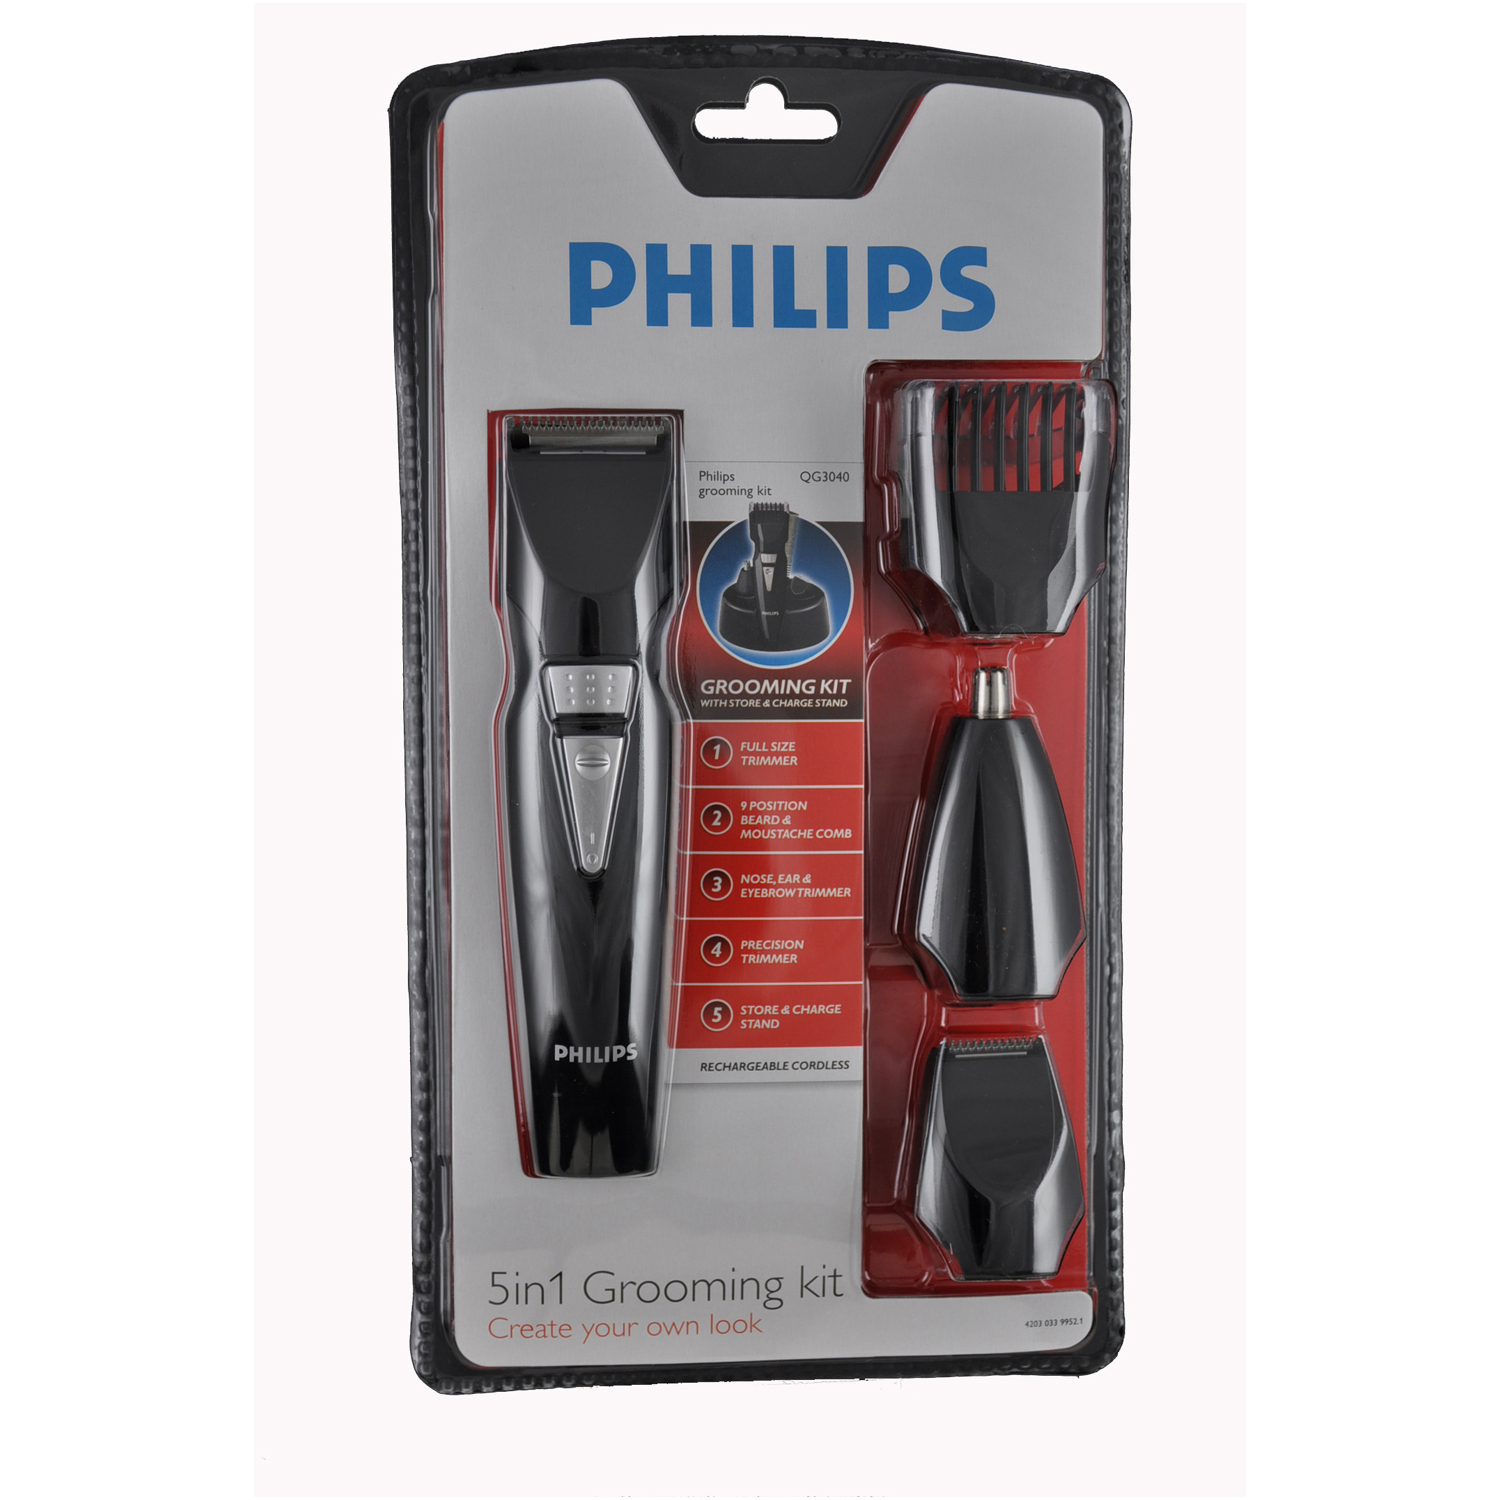 philips beard stylers and grooming kits personal care 2015 personal blog. Black Bedroom Furniture Sets. Home Design Ideas